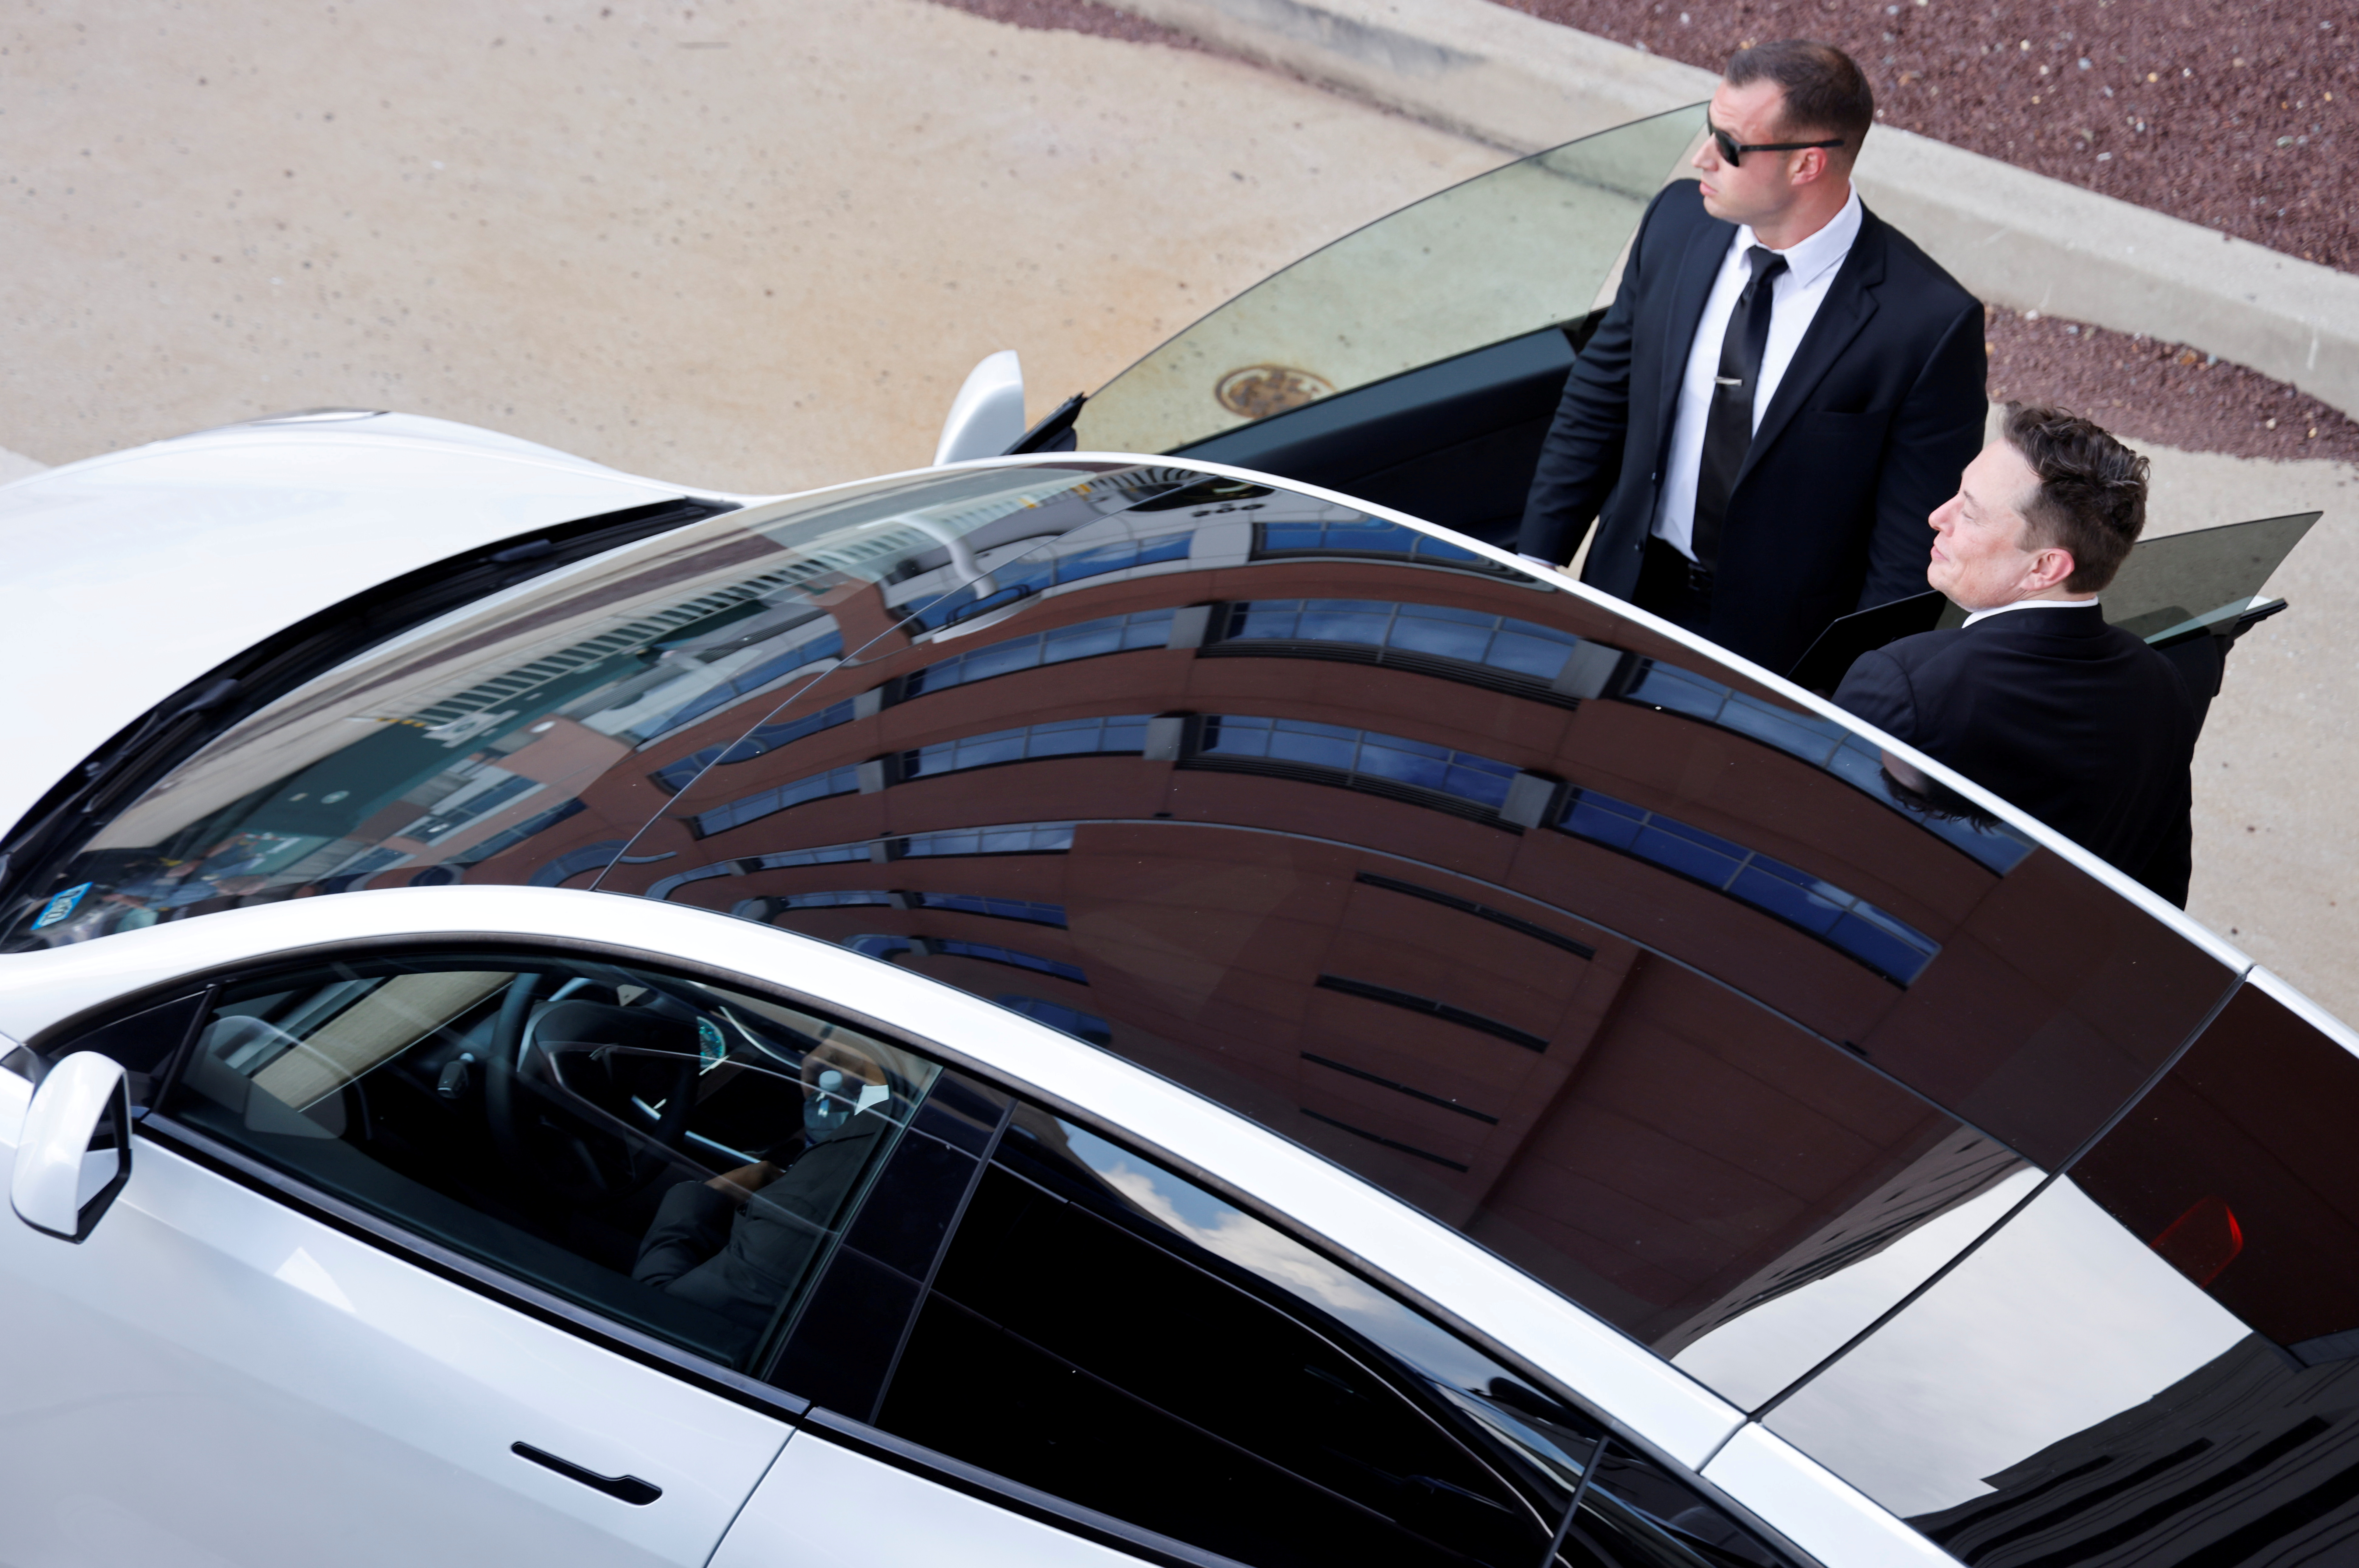 Tesla CEO Elon Musk departs after taking the stand to defend Tesla Inc's 2016 deal for SolarCity in a case before the Delaware Court of Chancery in Wilmington, Delaware, U.S. July 12, 2021. REUTERS/Jonathan Ernst